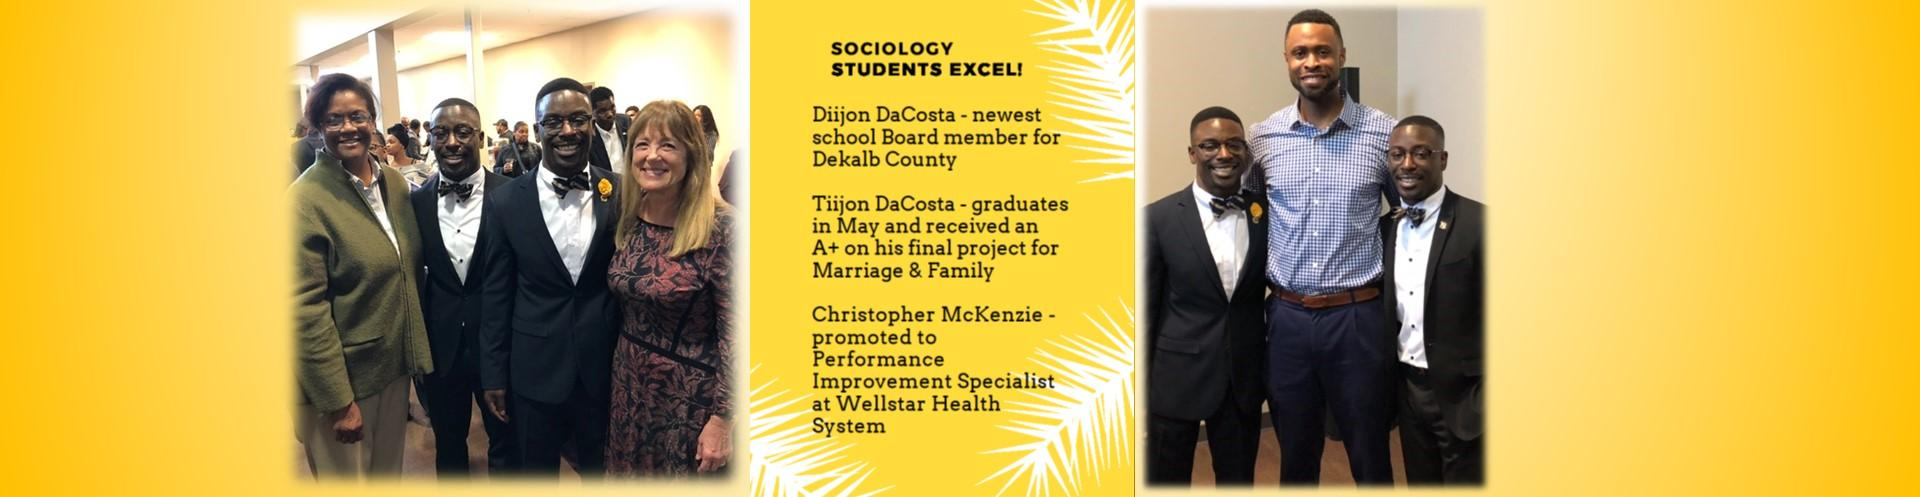 Professors celebrate outstanding Sociology students